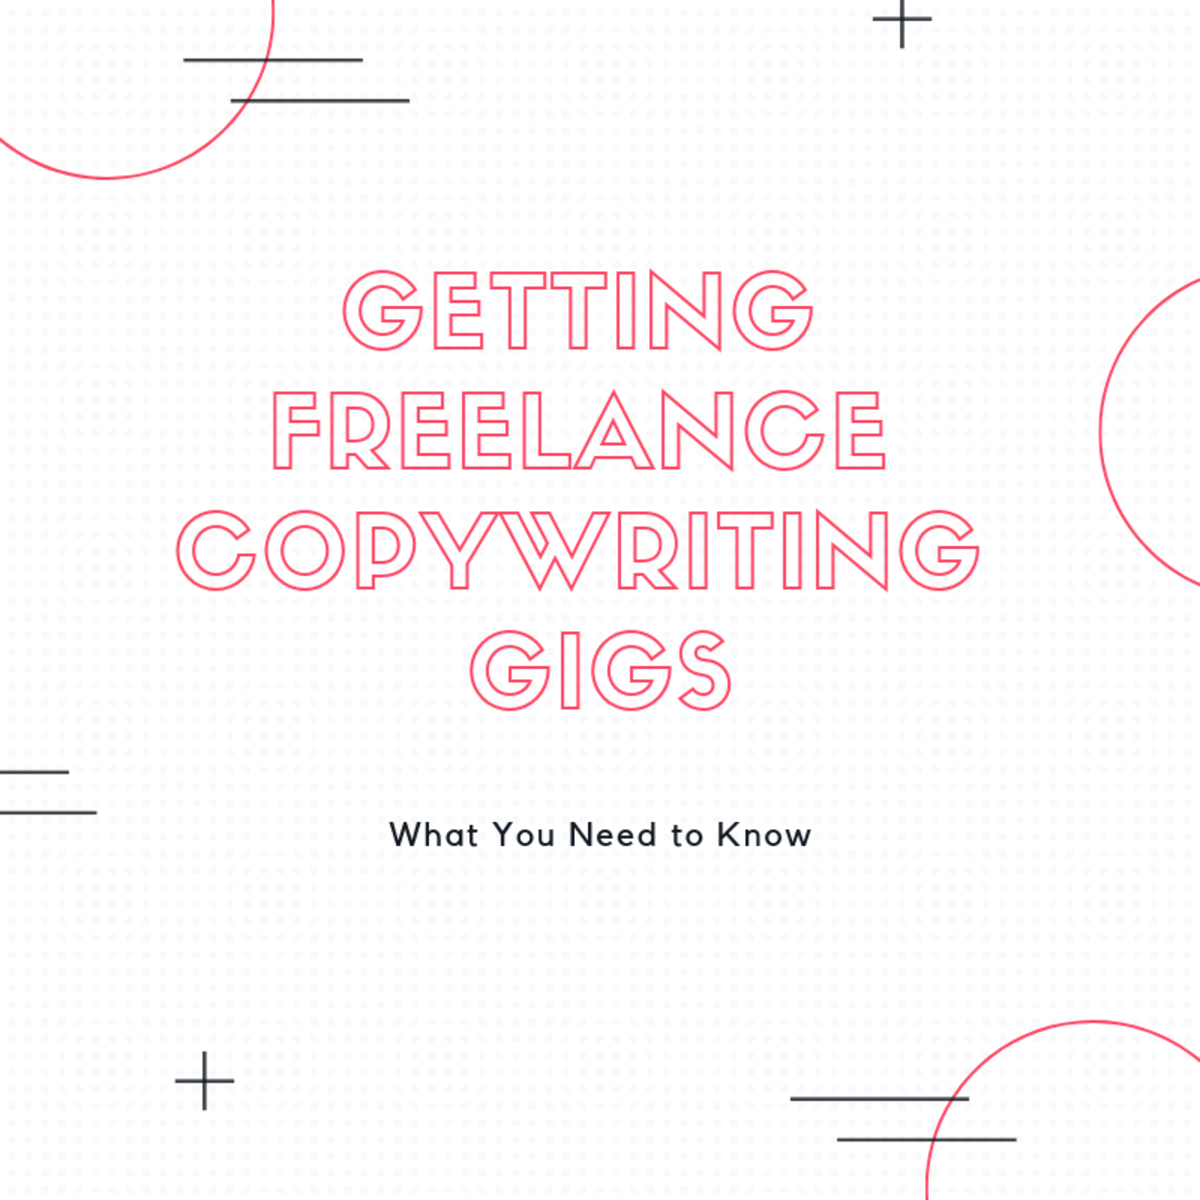 Read on for what you need to know to land that freelance copywriting gig.